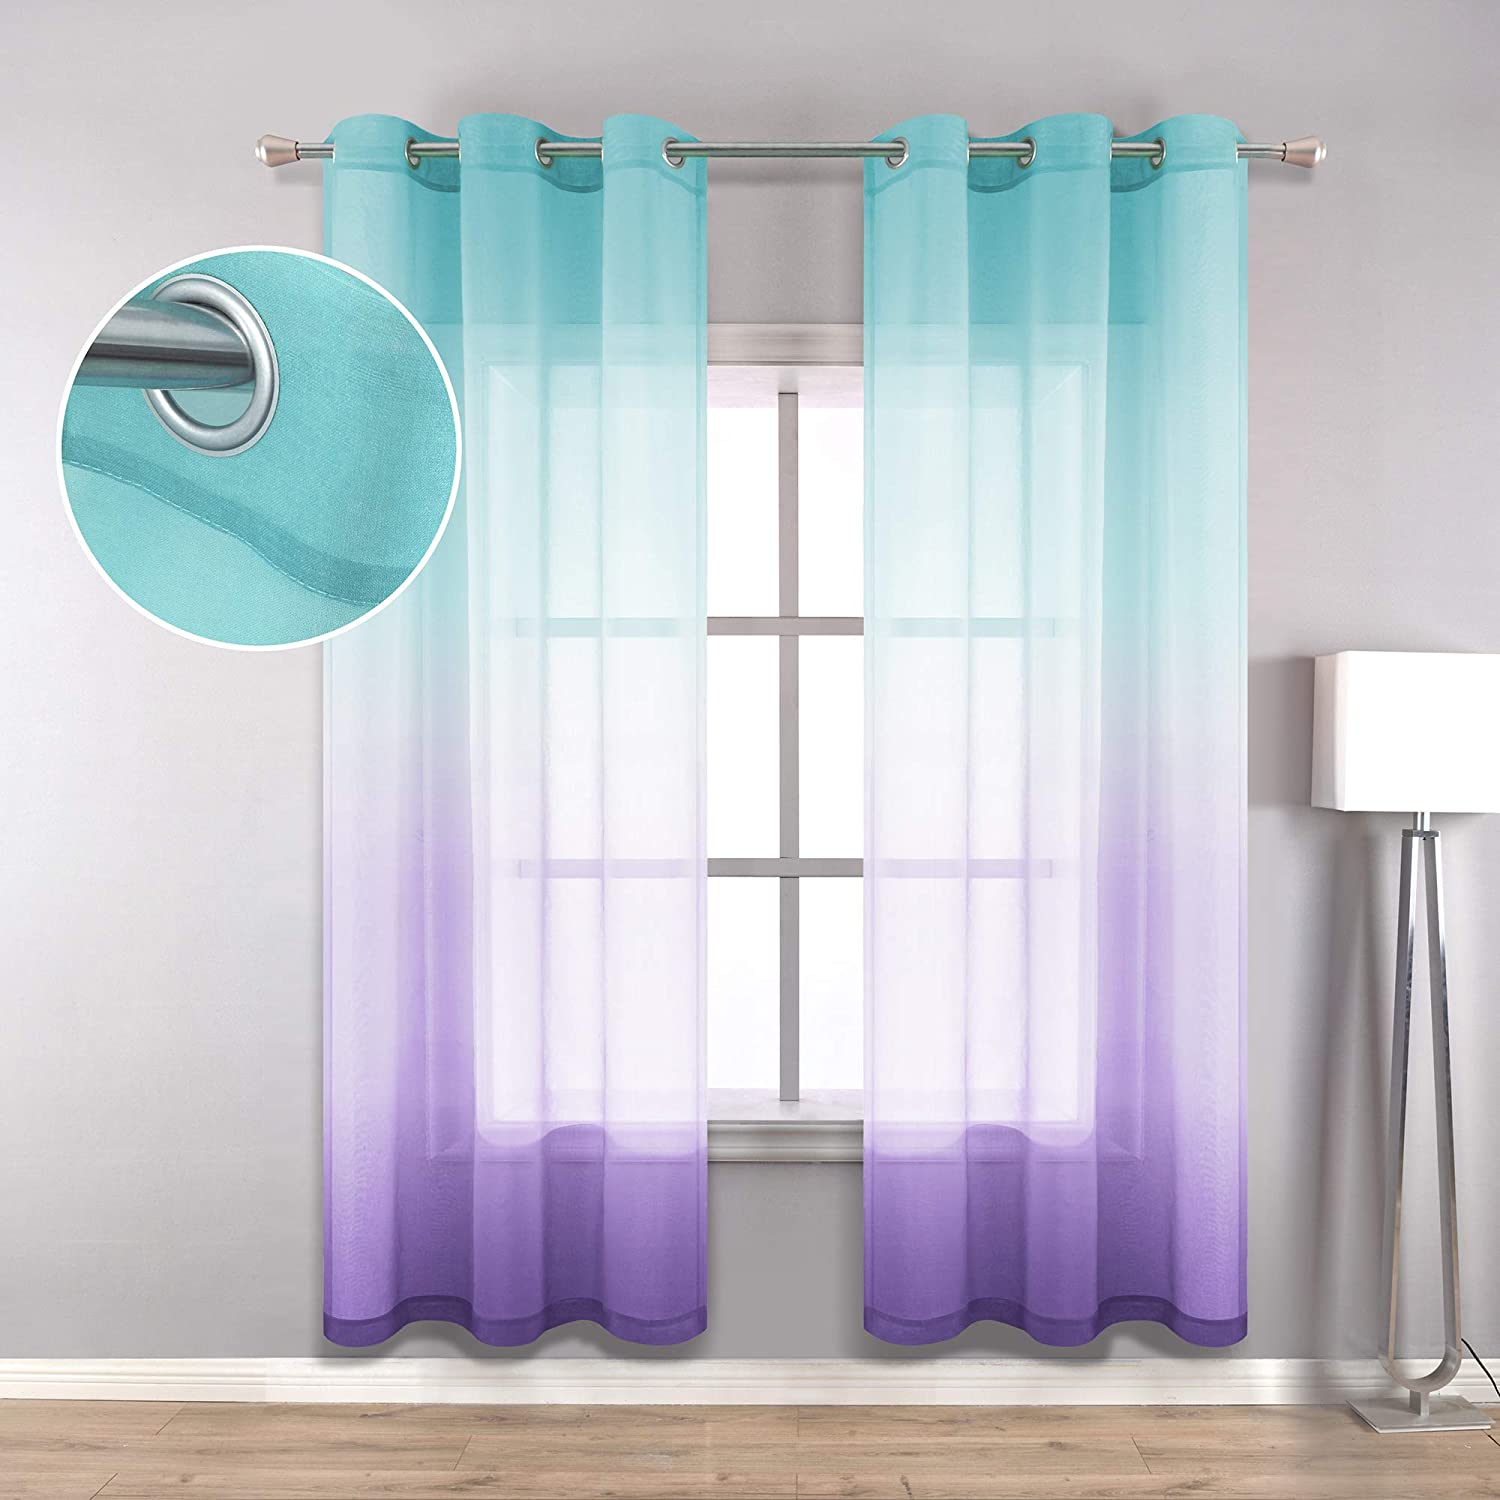 Green Purple Curtains 42 x 84 Inch Length for Girls Bedroom Decor Set 2 Panels Grommet Window Sheer Ombre Mermaid Gifts for Girls Room Decoration Youth Year Little Baby Nursery Turquoise Teal Lilac